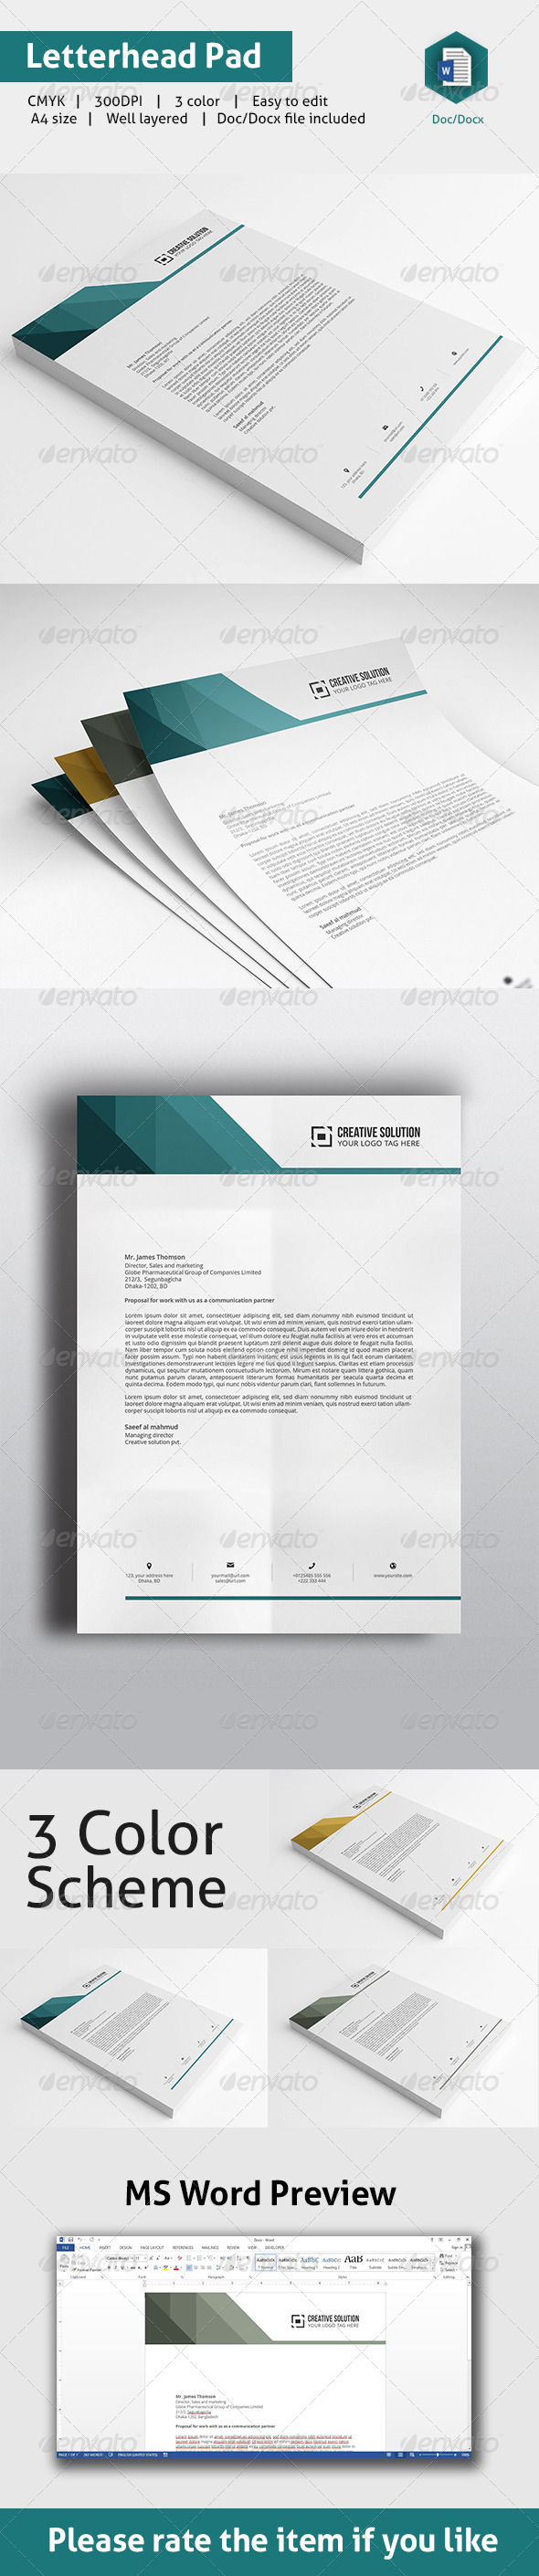 GraphicRiver Letterhead Pad With MS Word 8756779